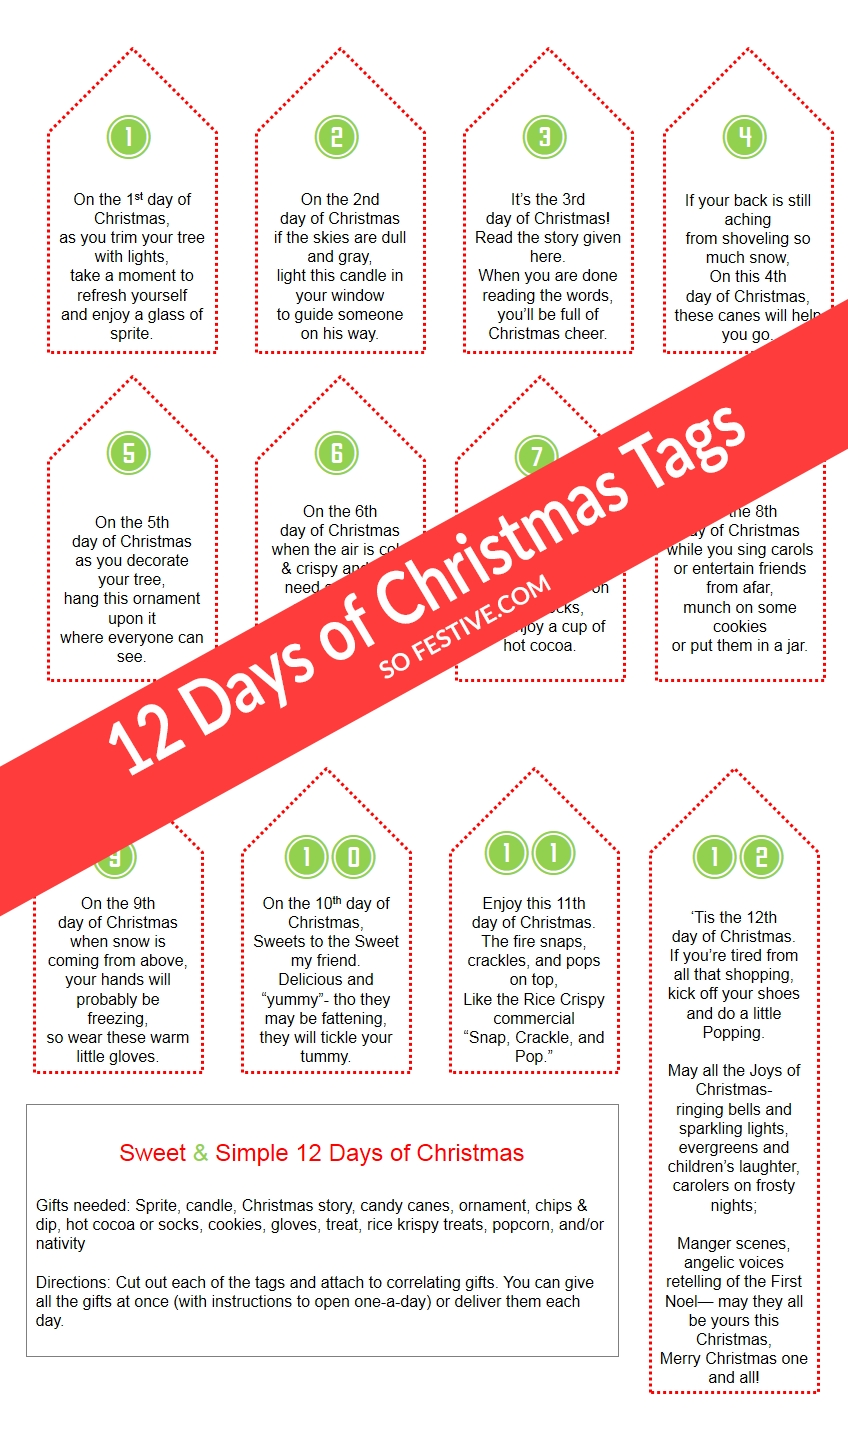 10 Spectacular 12 Days Of Christmas Gifts Ideas sweet simple 12 days of christmas printables so festive 1 2020